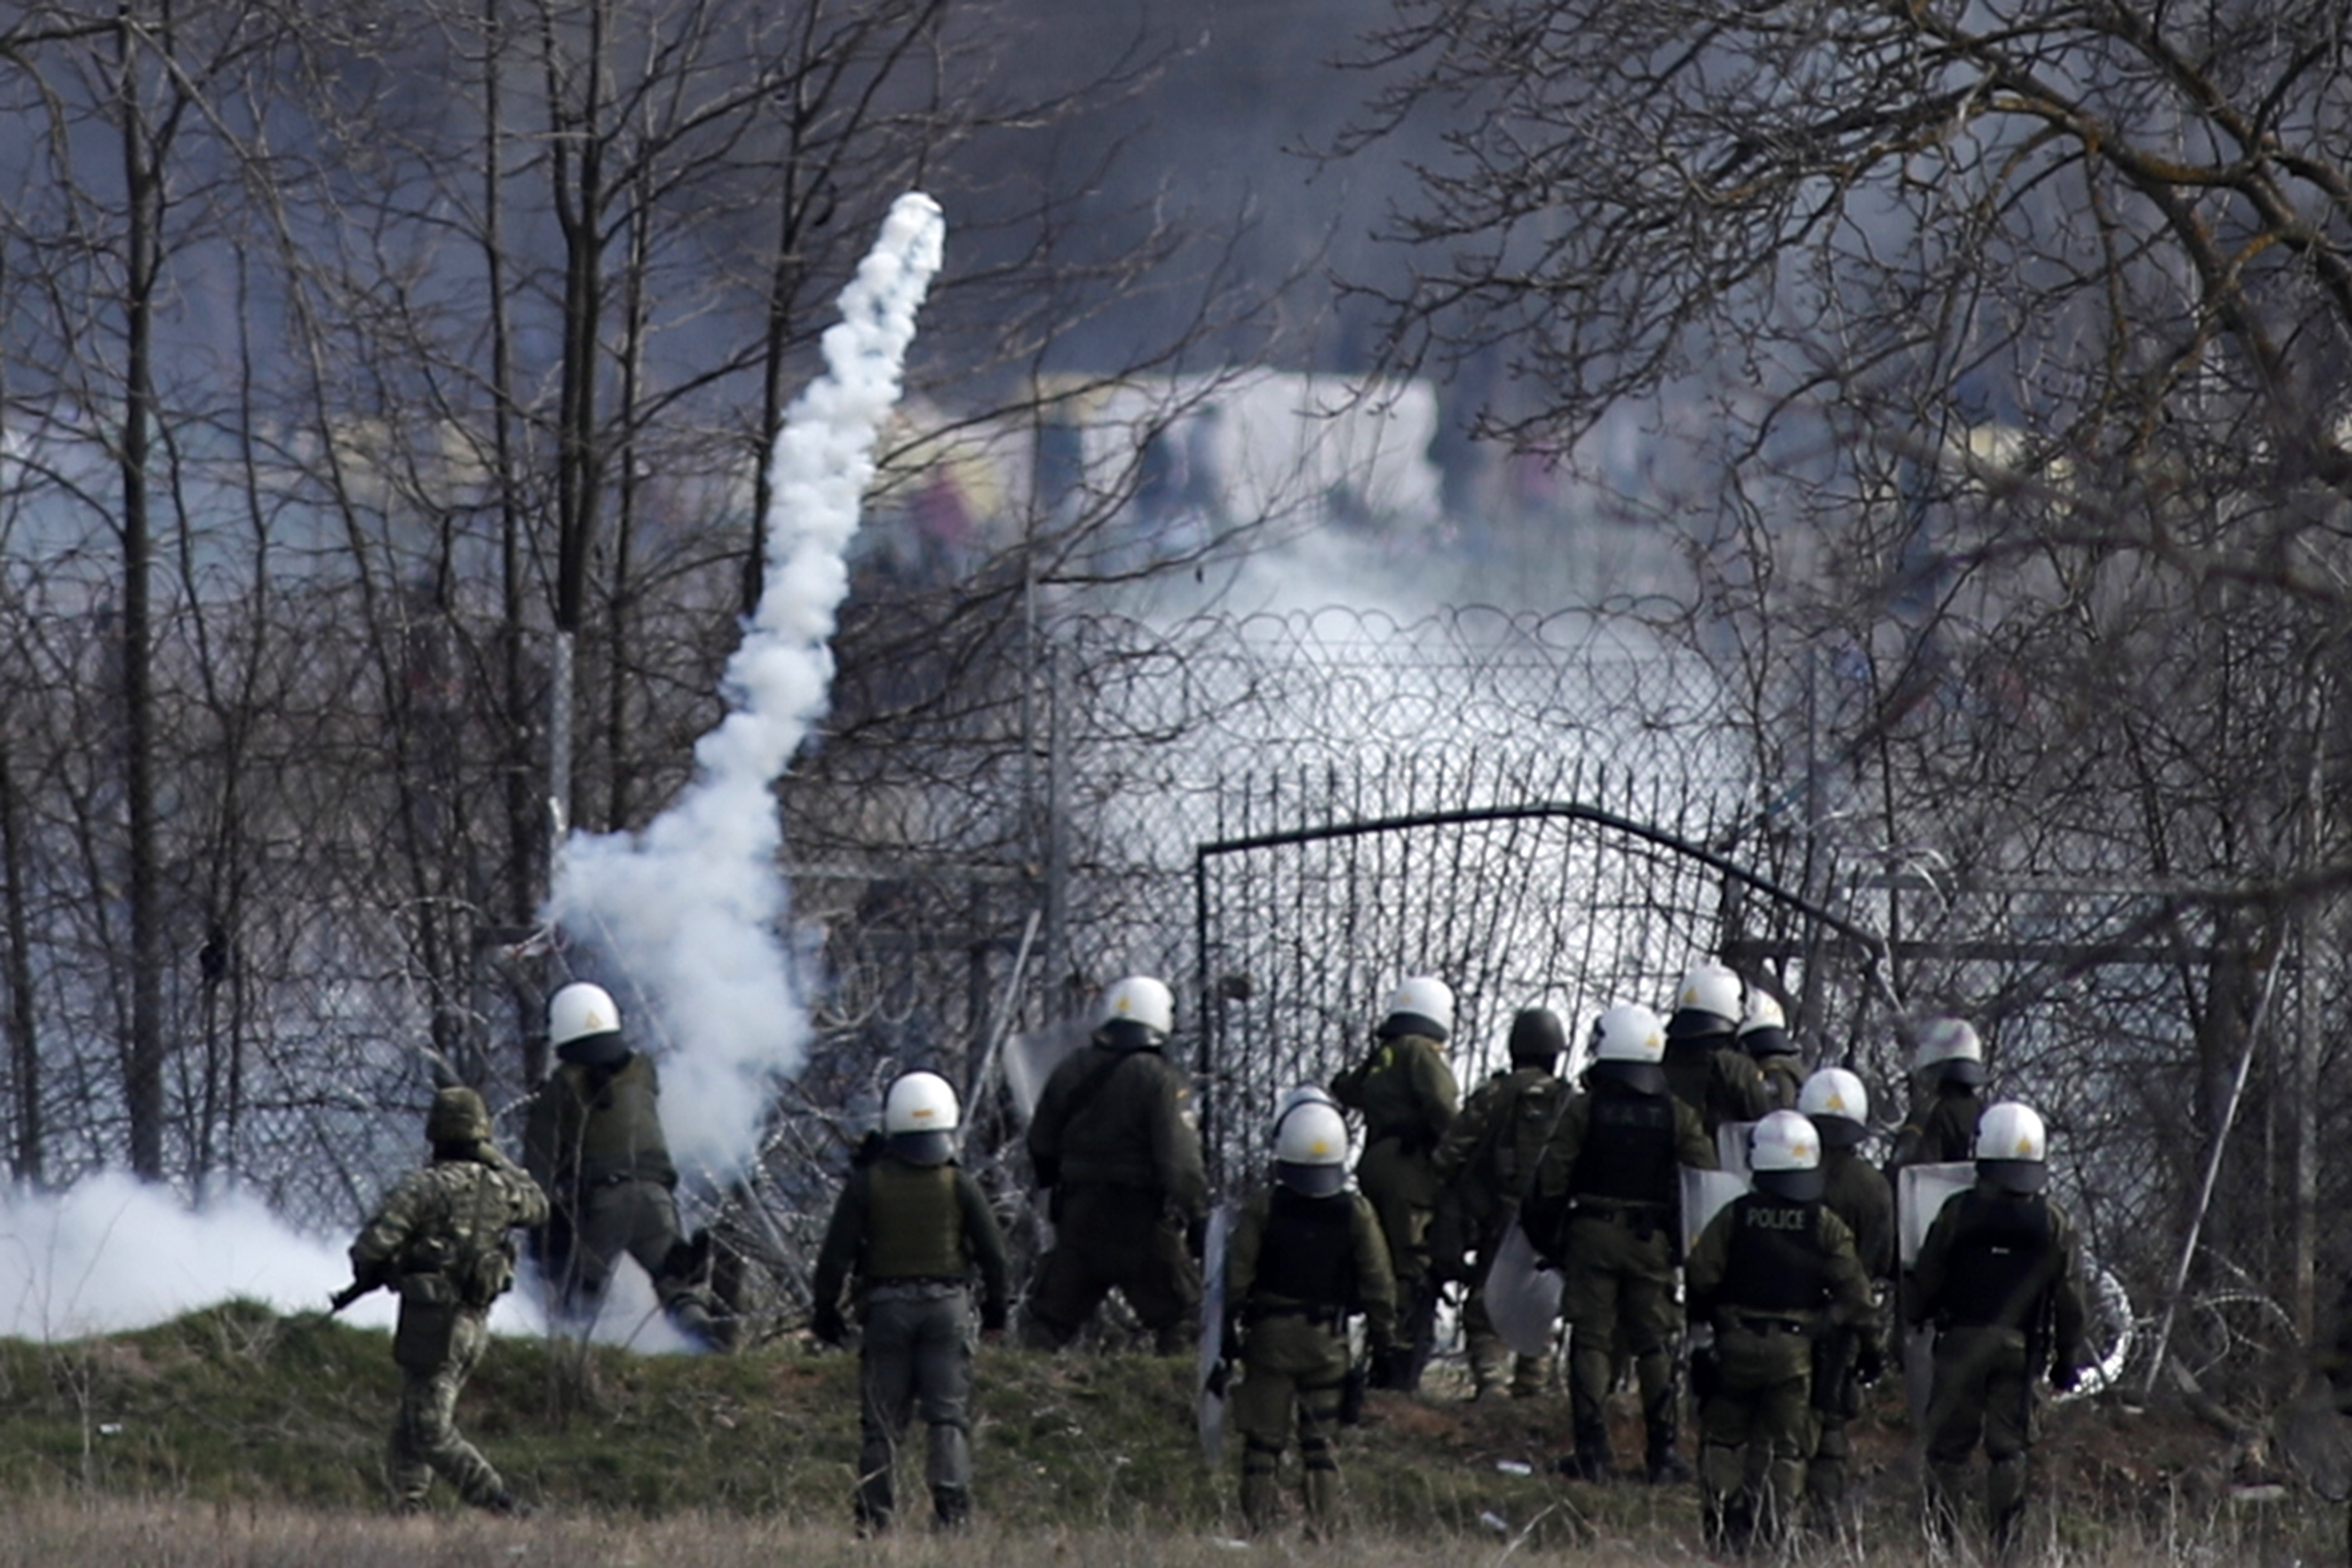 Greek police guard as migrants gather at a border fence on the Turkish side, during clashes at the Greek-Turkish border in Kastanies, Evros region, on March 7, 2020.